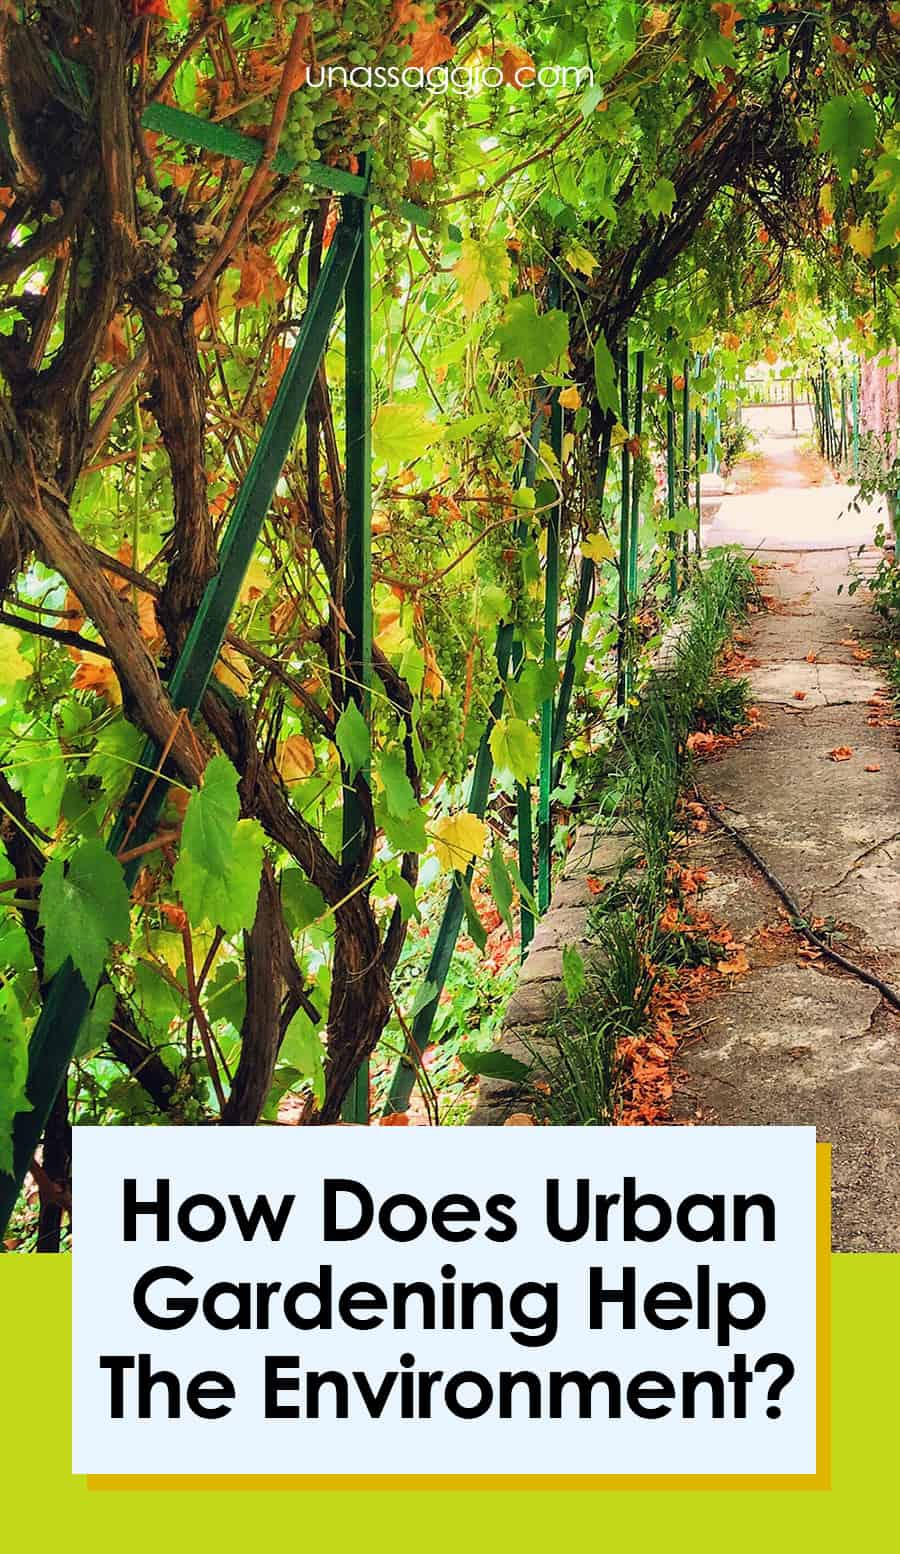 How Does Urban Gardening Help The Environment?